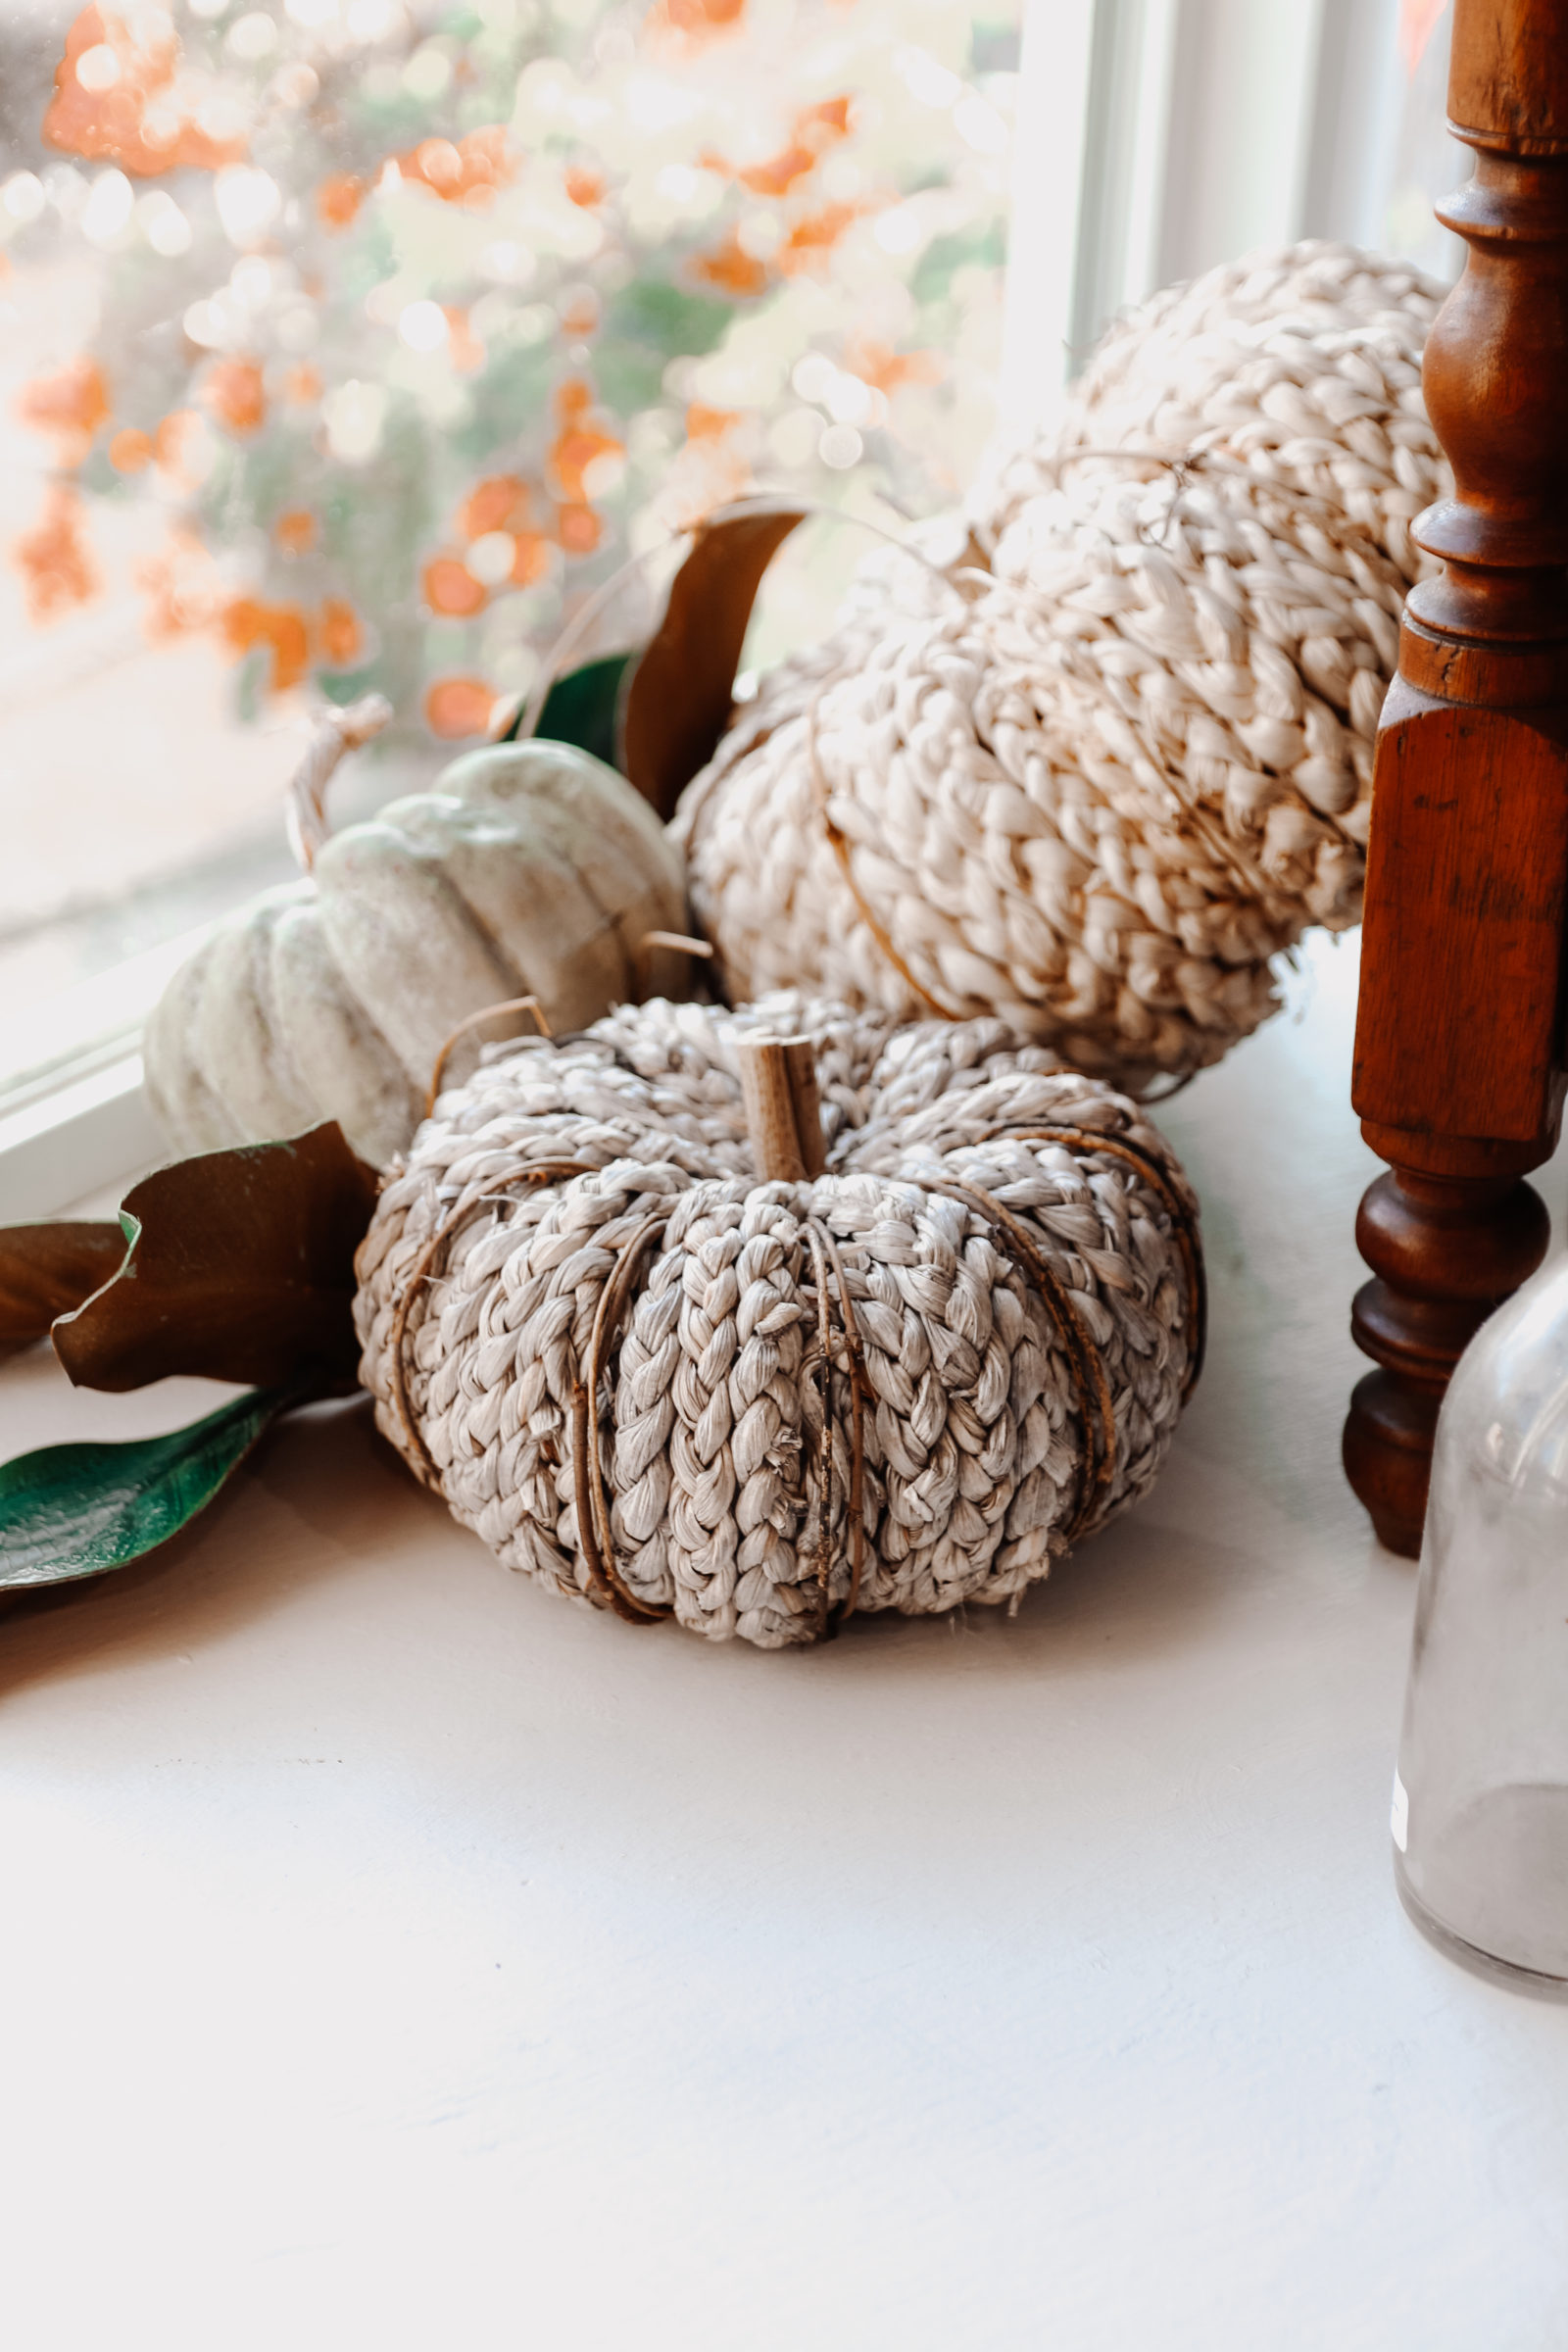 Tazewell County Mercantile Goods for Fall